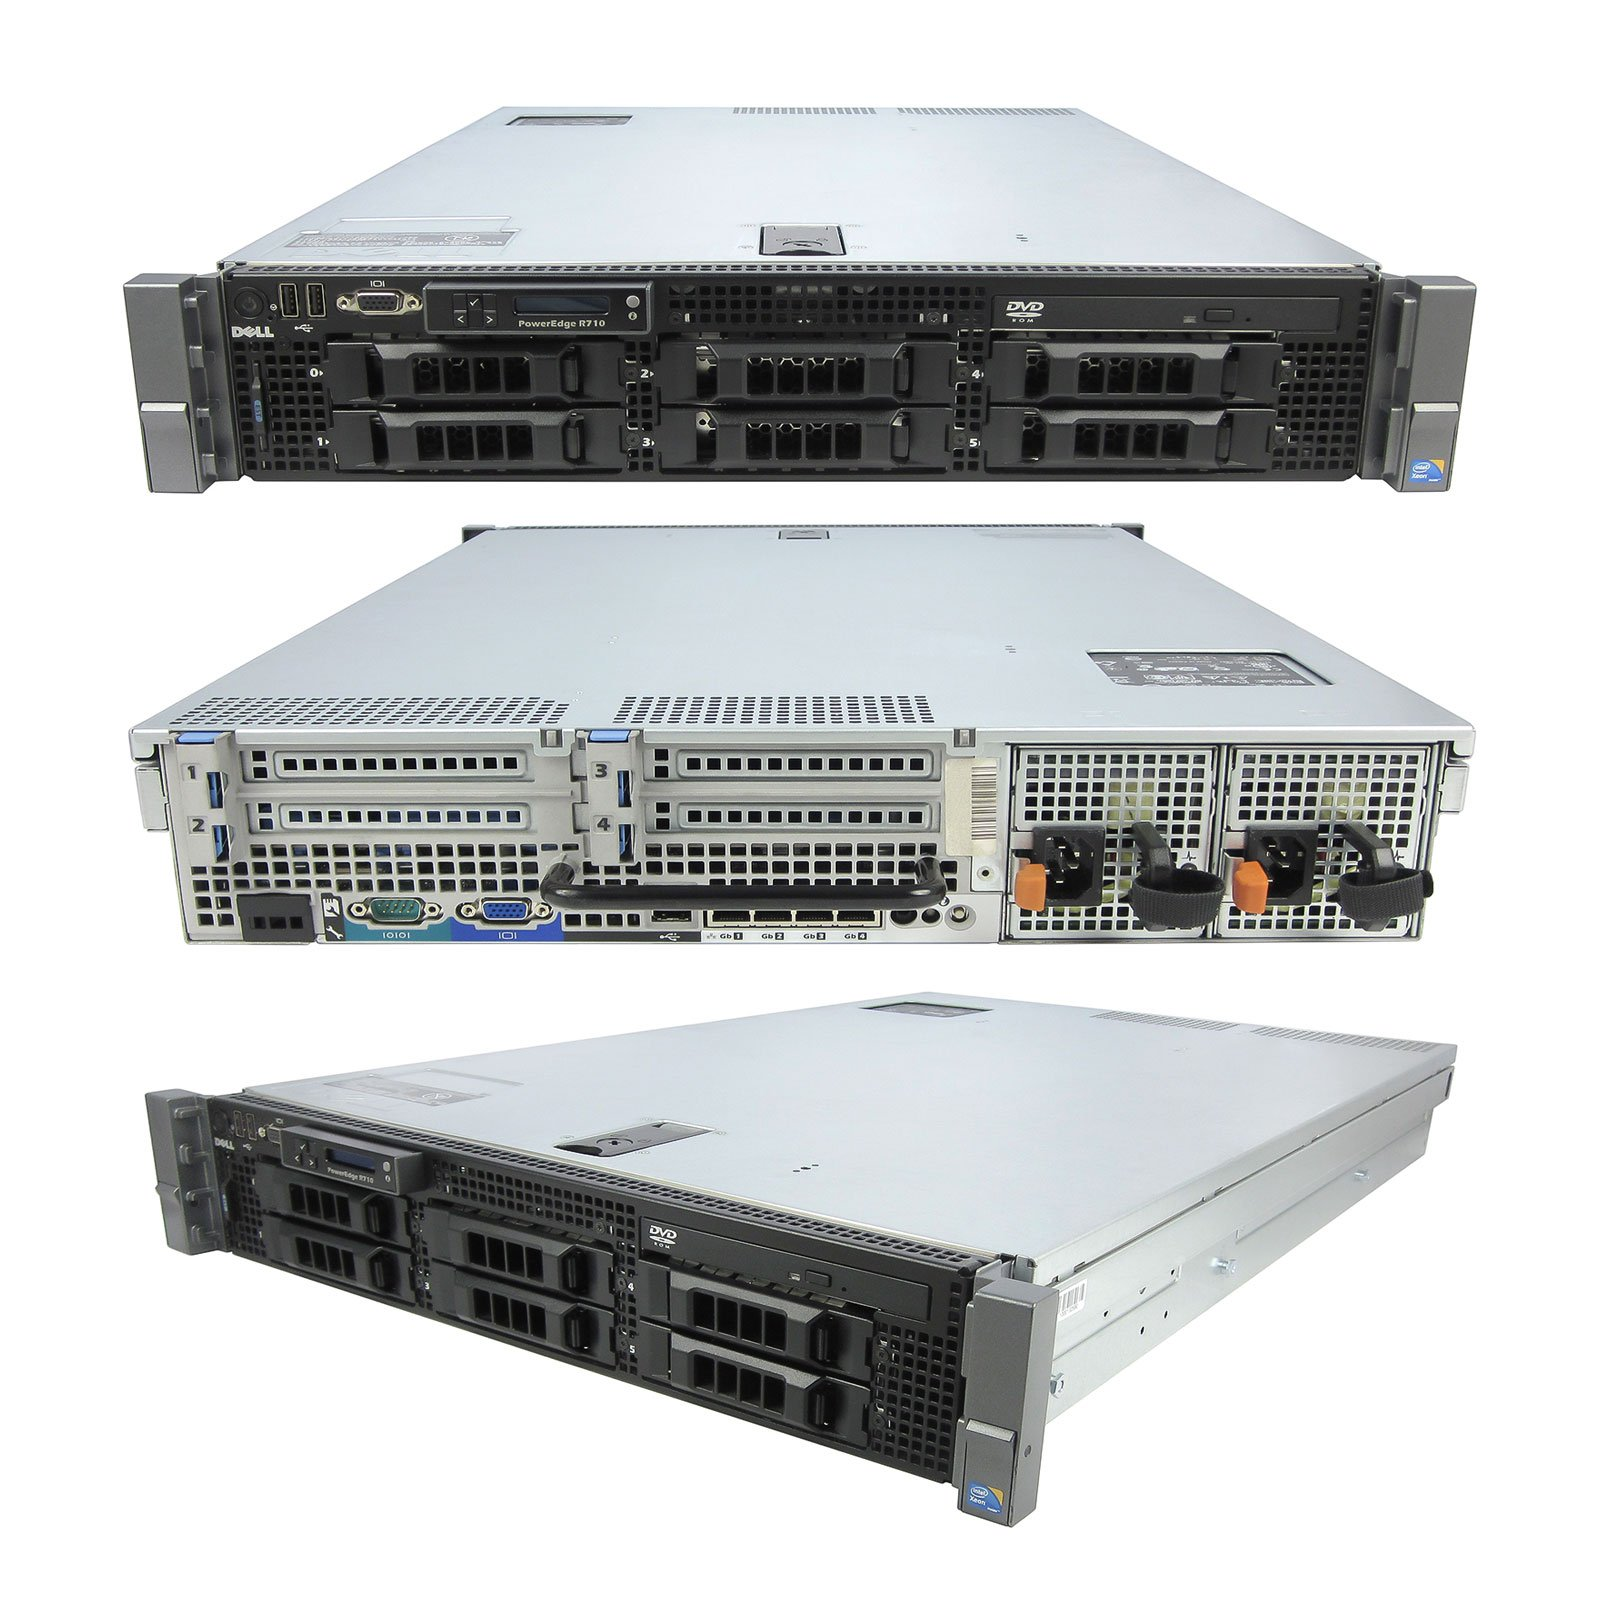 Lot of 4 High-End Virtualization Server 12-Core 128GB RAM 12TB RAID Dell PowerEdge R710 (Certified Refurbished)